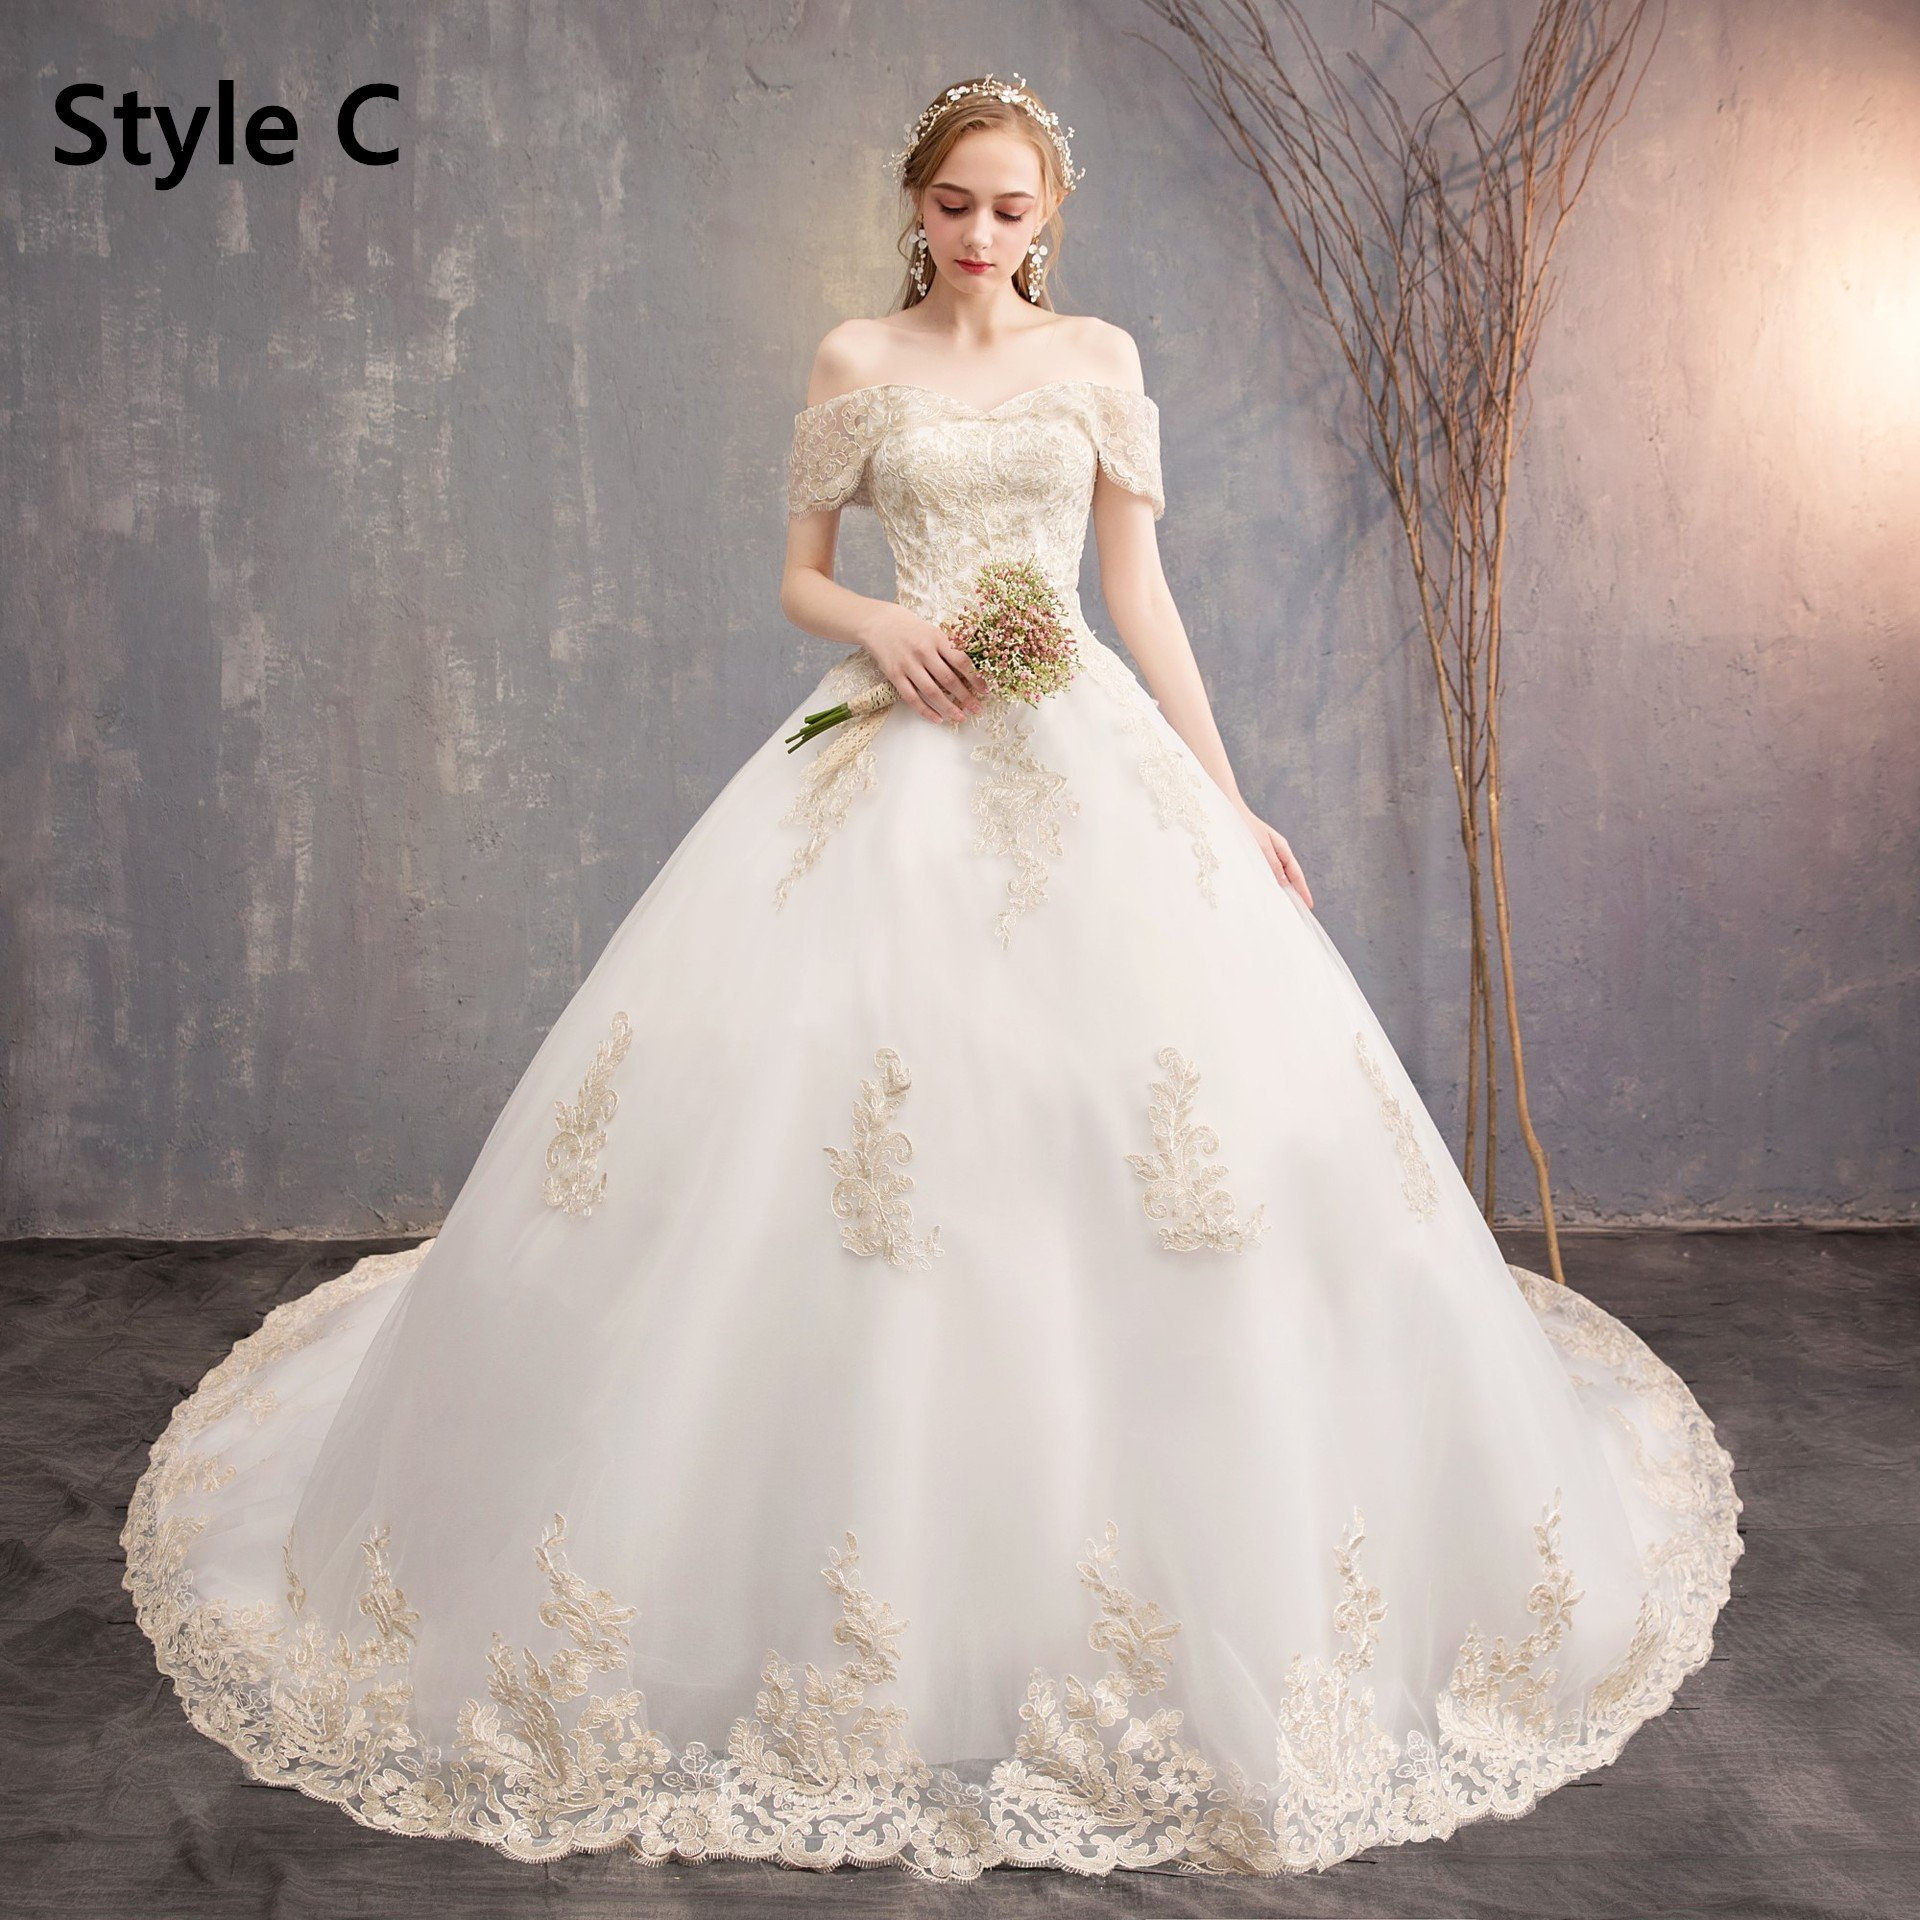 Lace Wedding Dresses 2020 New 715 Black Dress With Blue Flowers Cute Outfits For Girls Plus Size Pink Lace Dress Sunflower Wedding Bridal Outlet Plus Size Bridesmaid